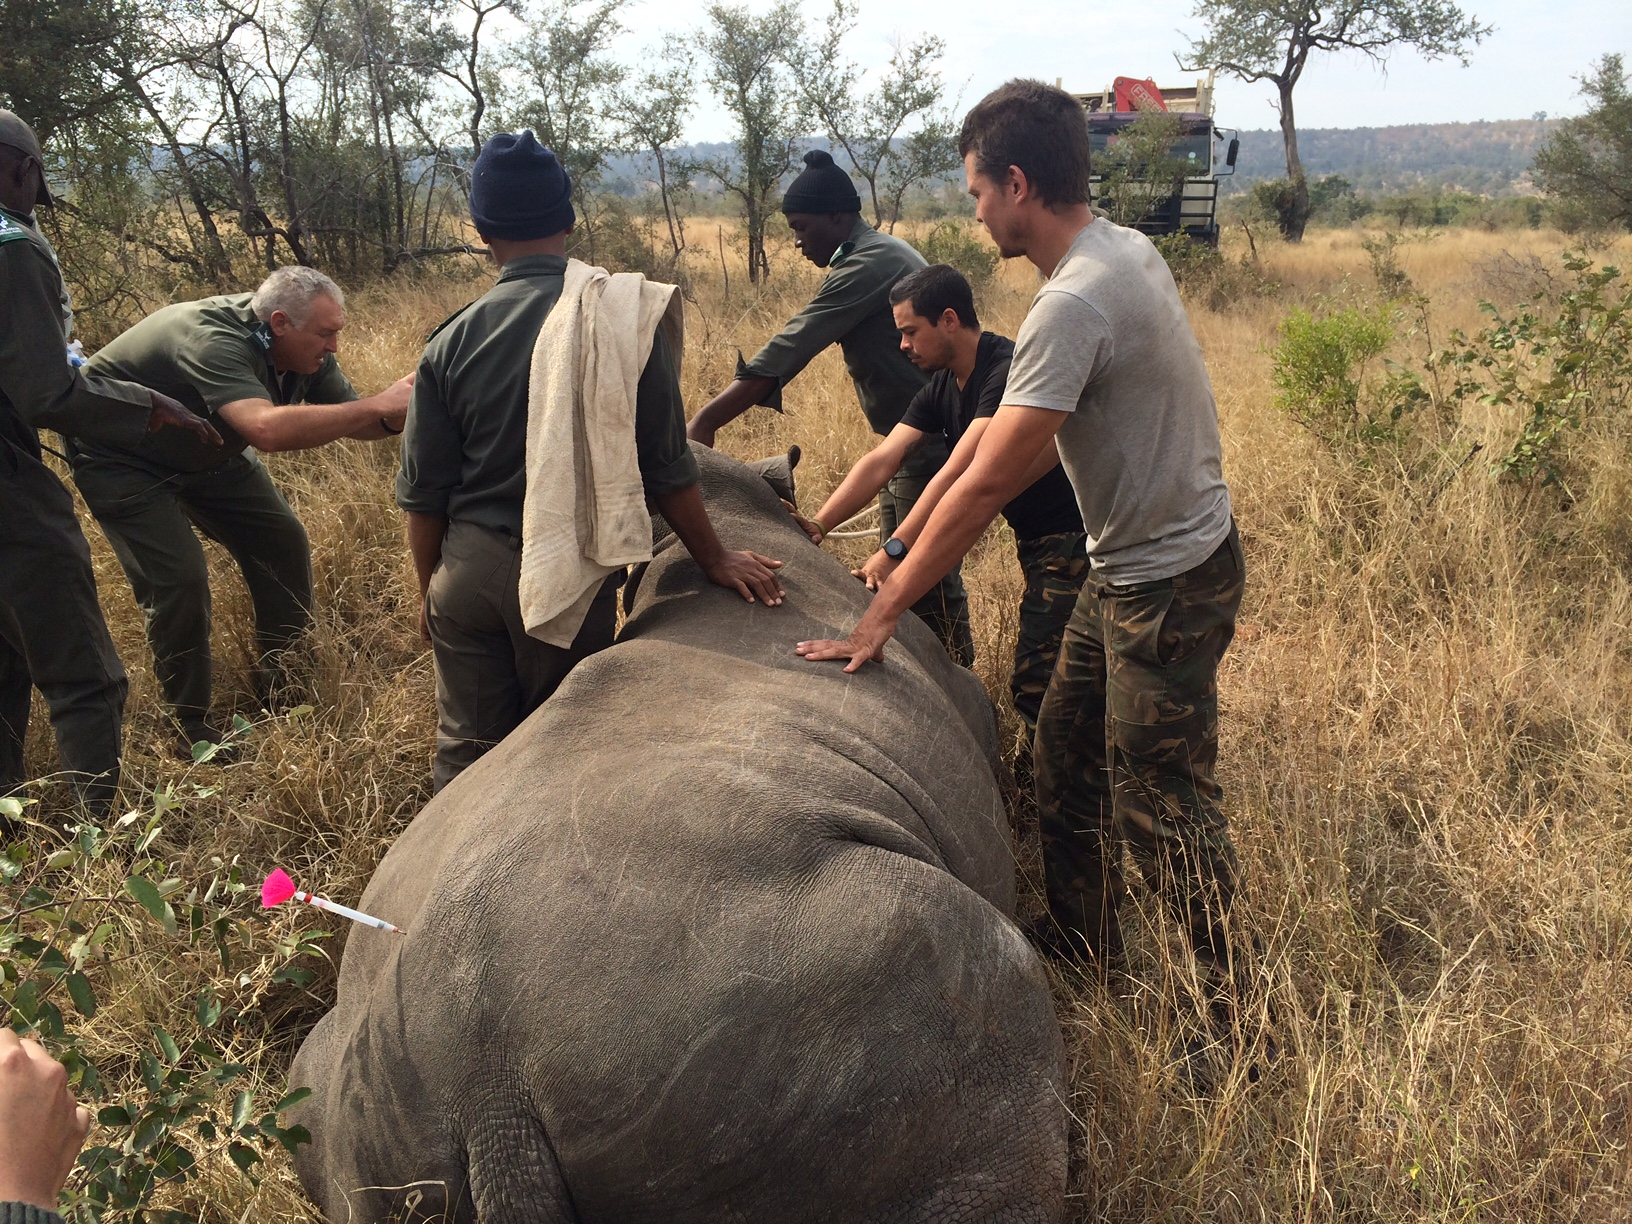 Relocating with SANPARKS veterinary crew a southern white rhino as part of a strategic plan to move them to a more defensible area within Kruger National Park